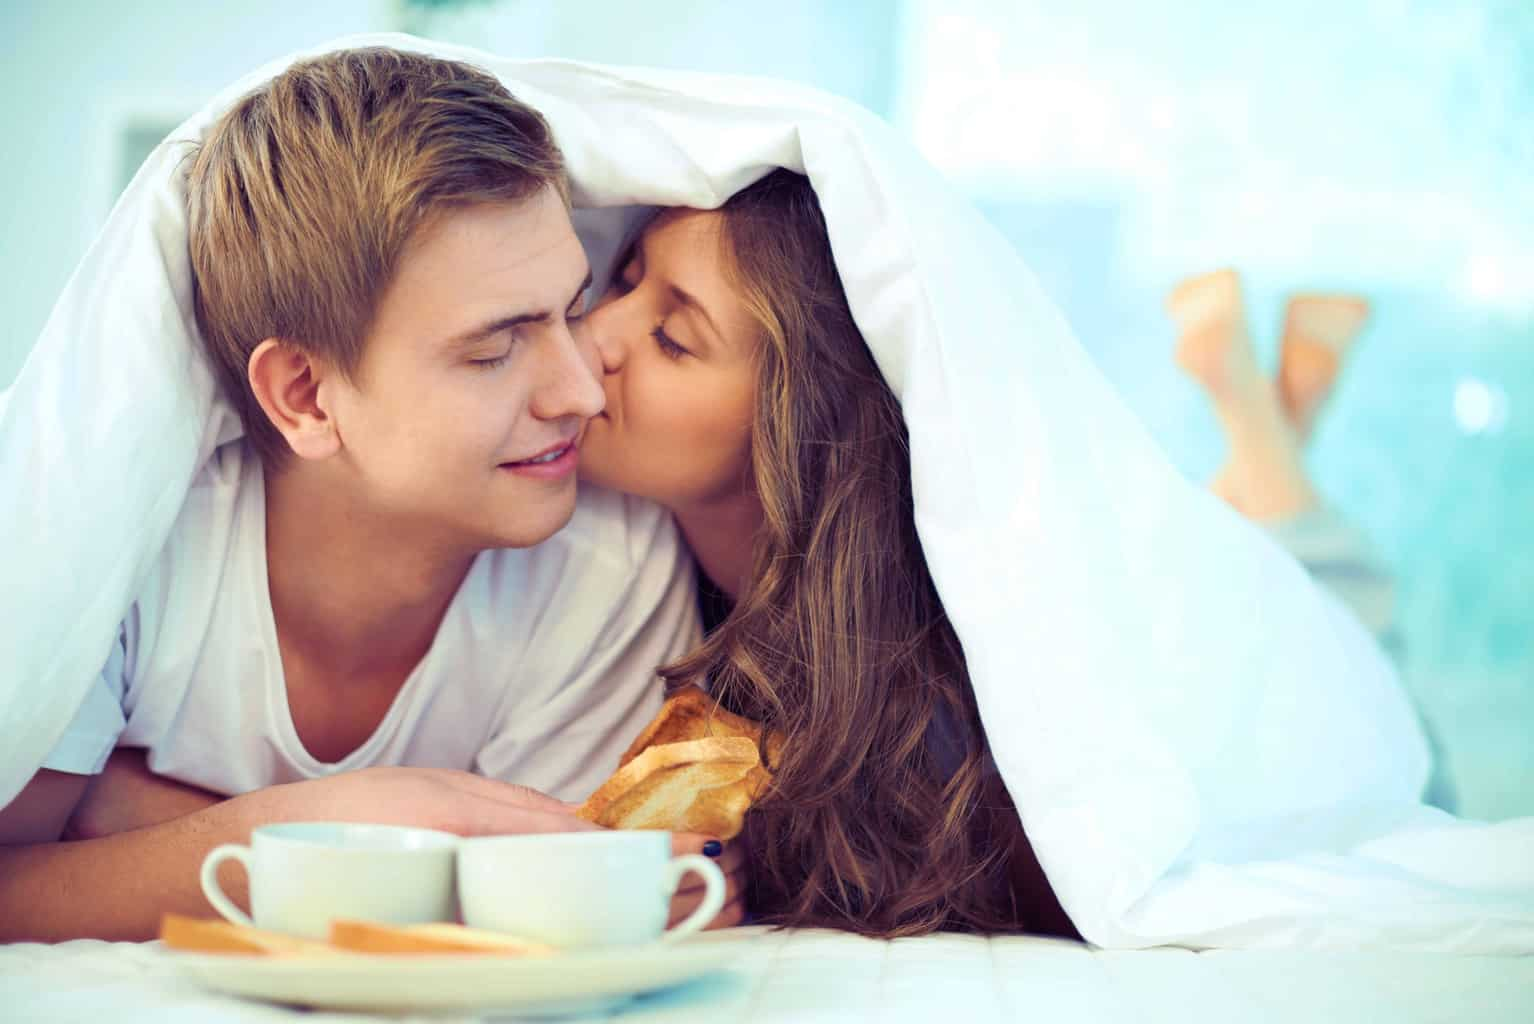 Couple enjoying one another while having breakfast in bed